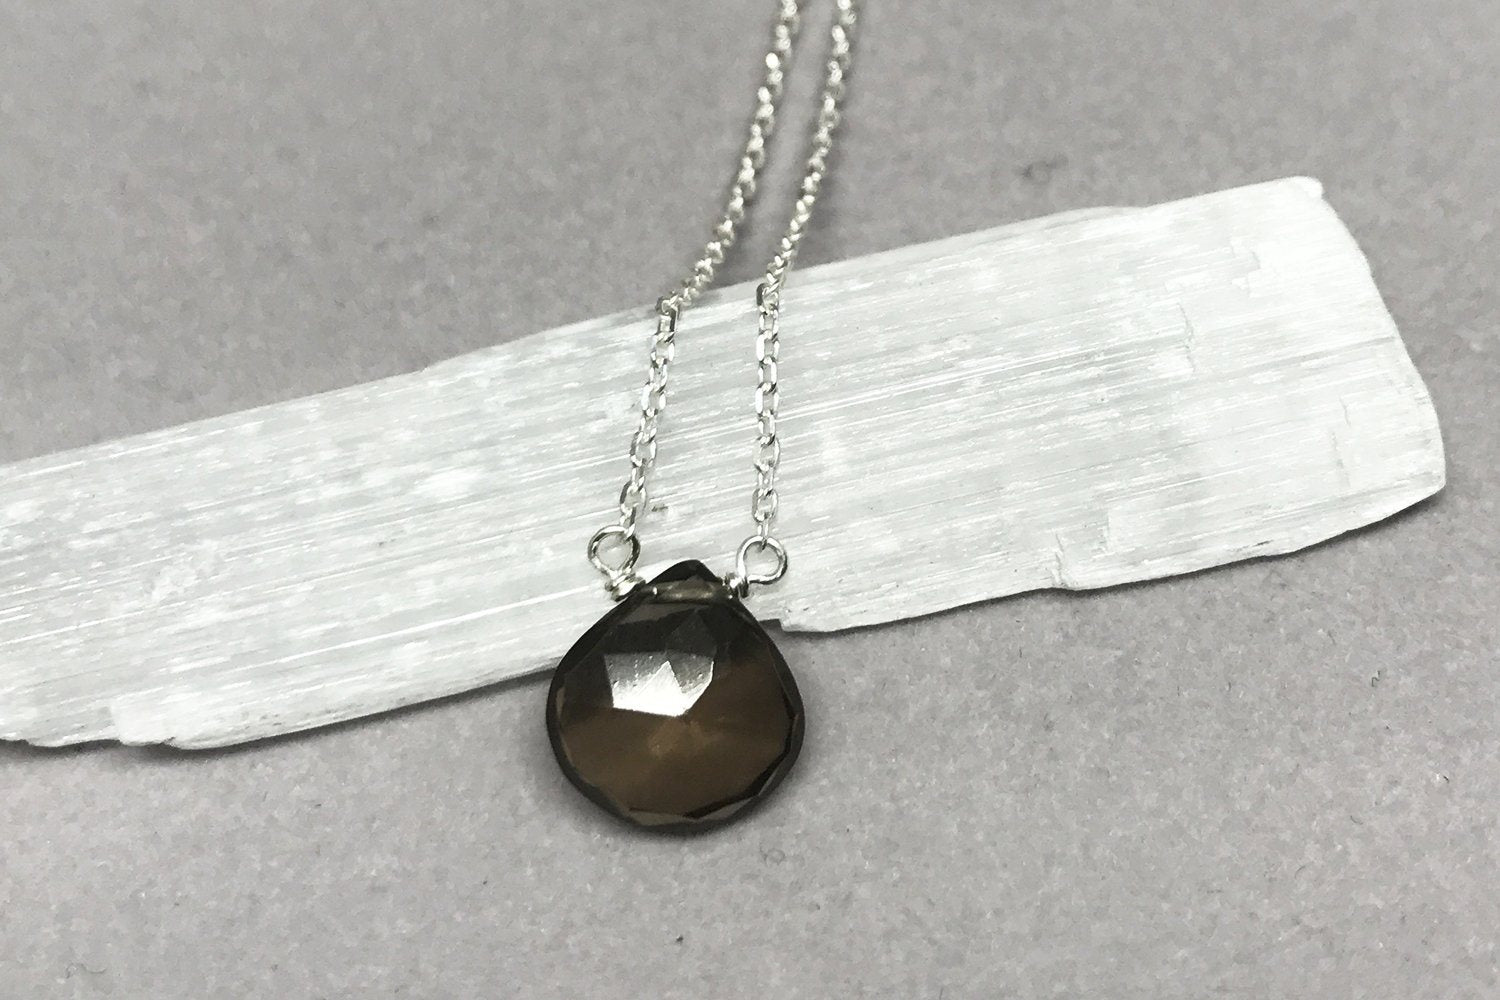 Smoky quartz little rock sterling silver necklace